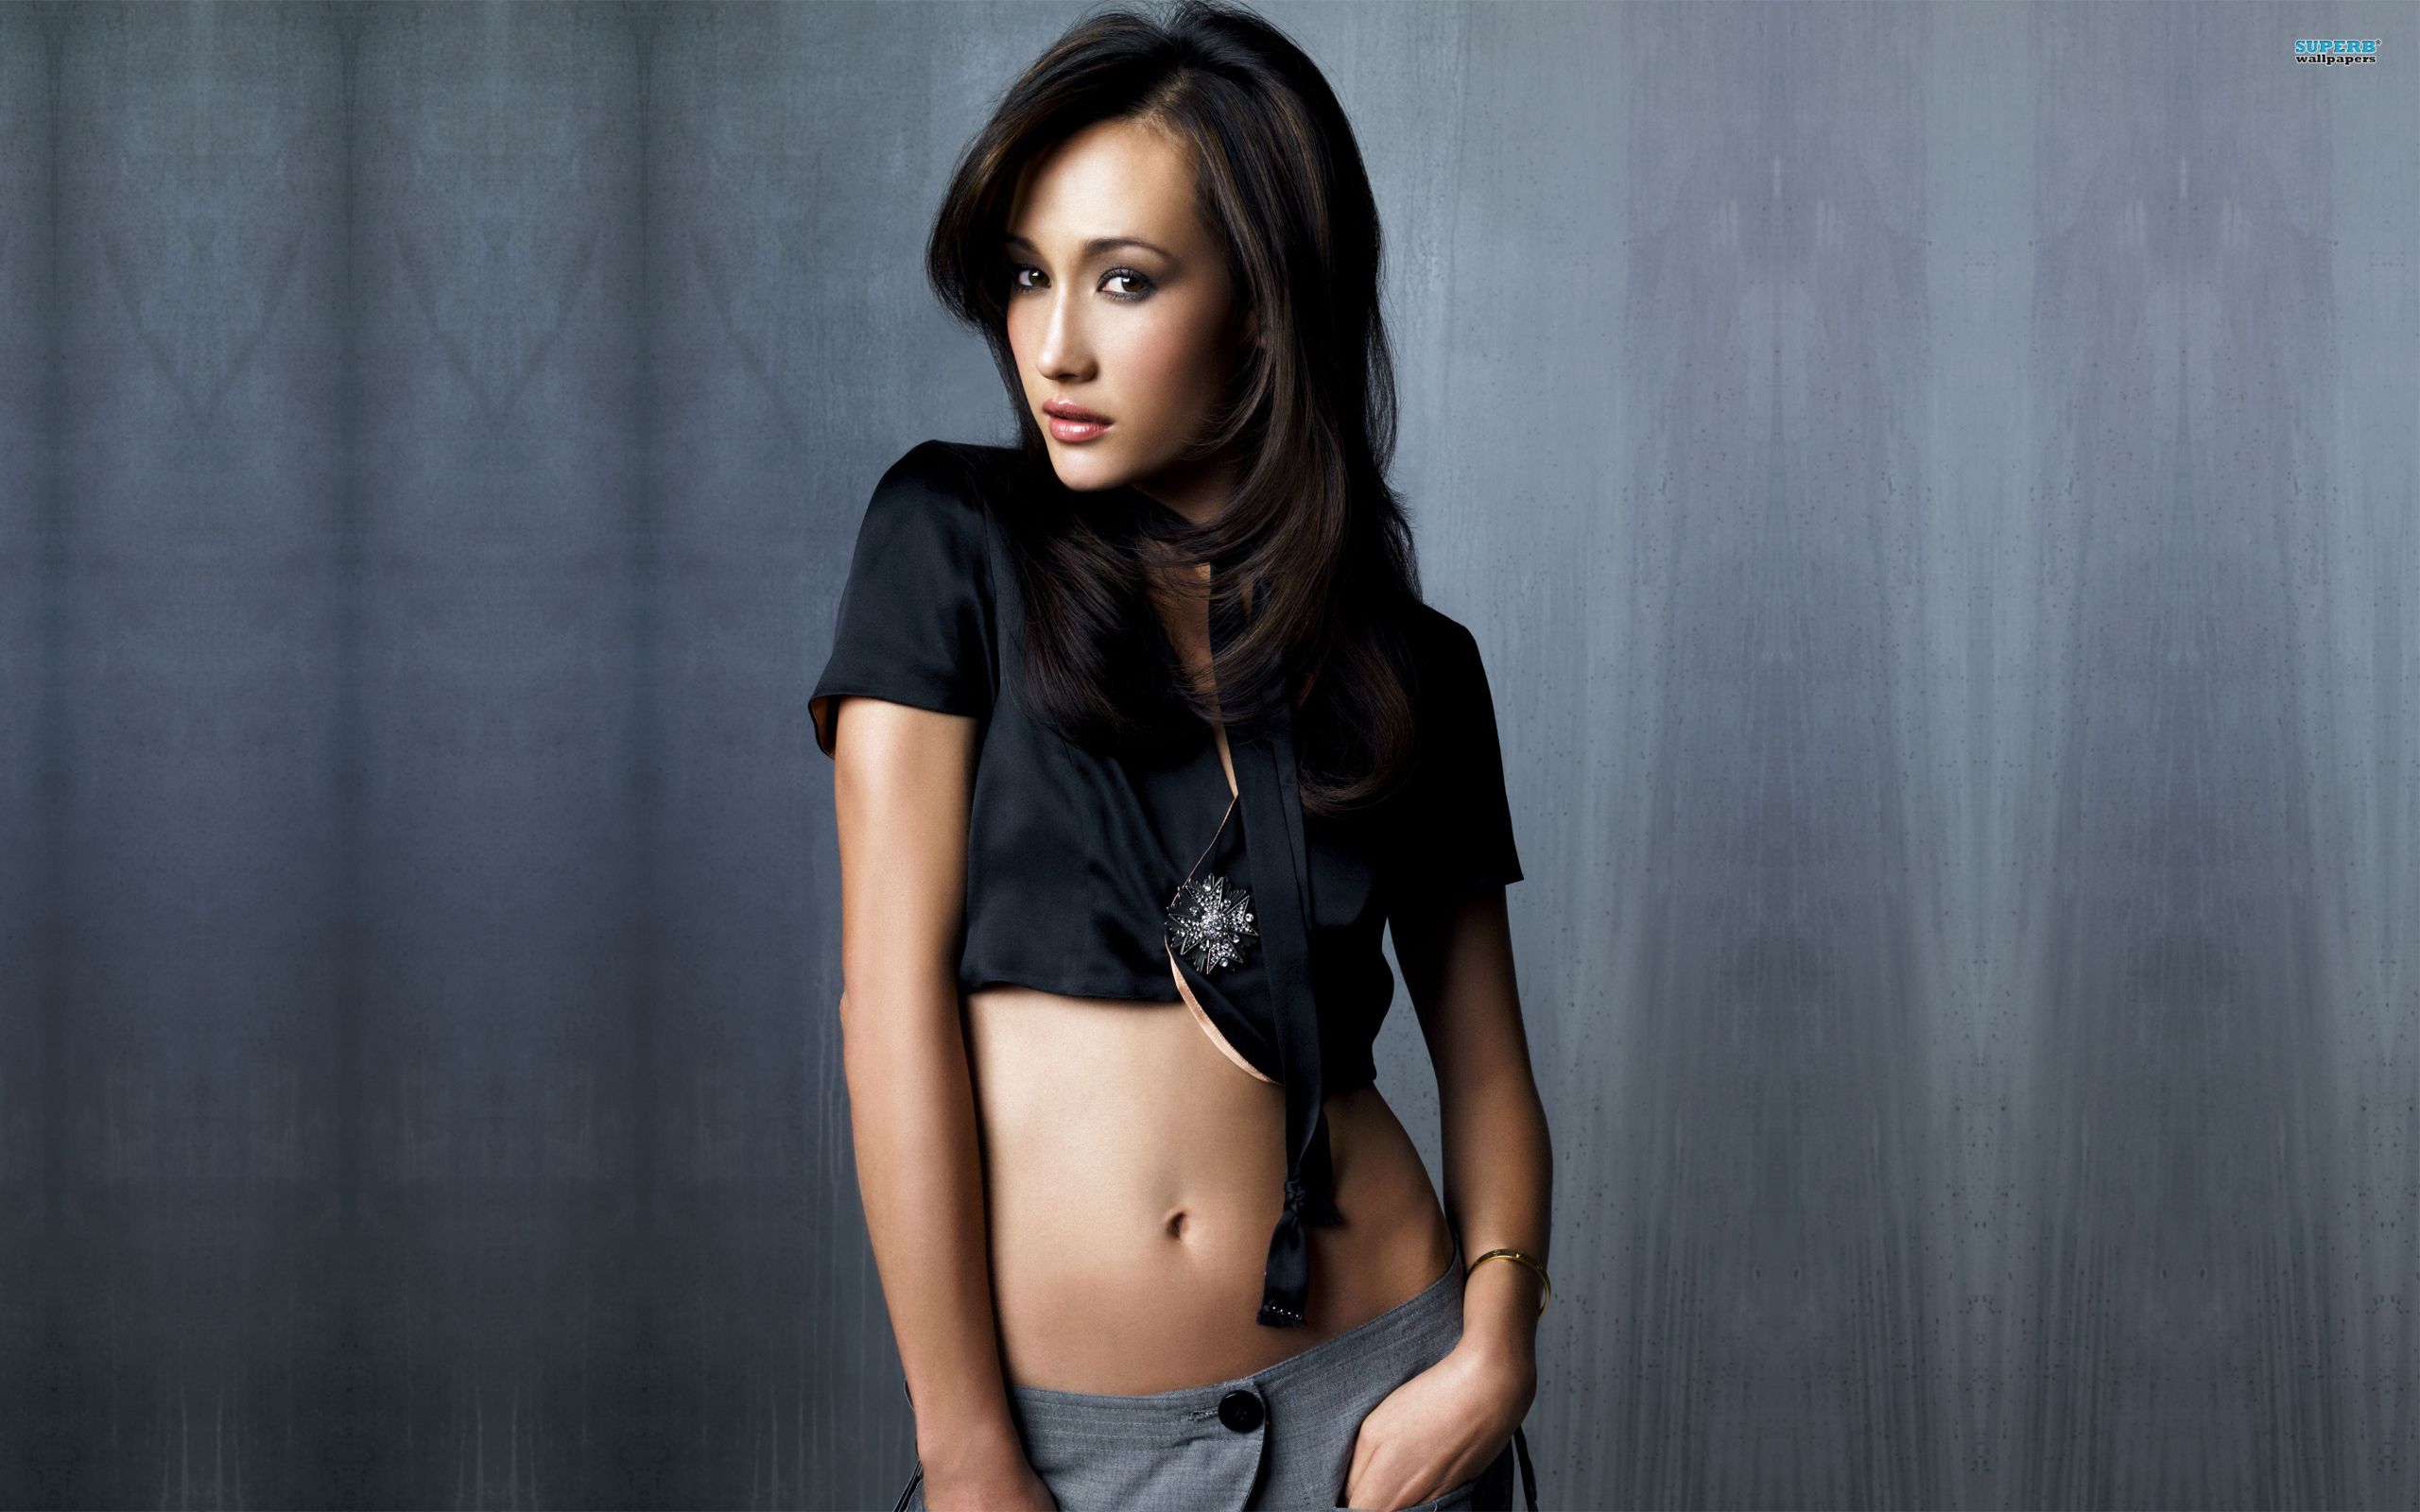 Maggie Q wallpaper 2560x1600 jpg